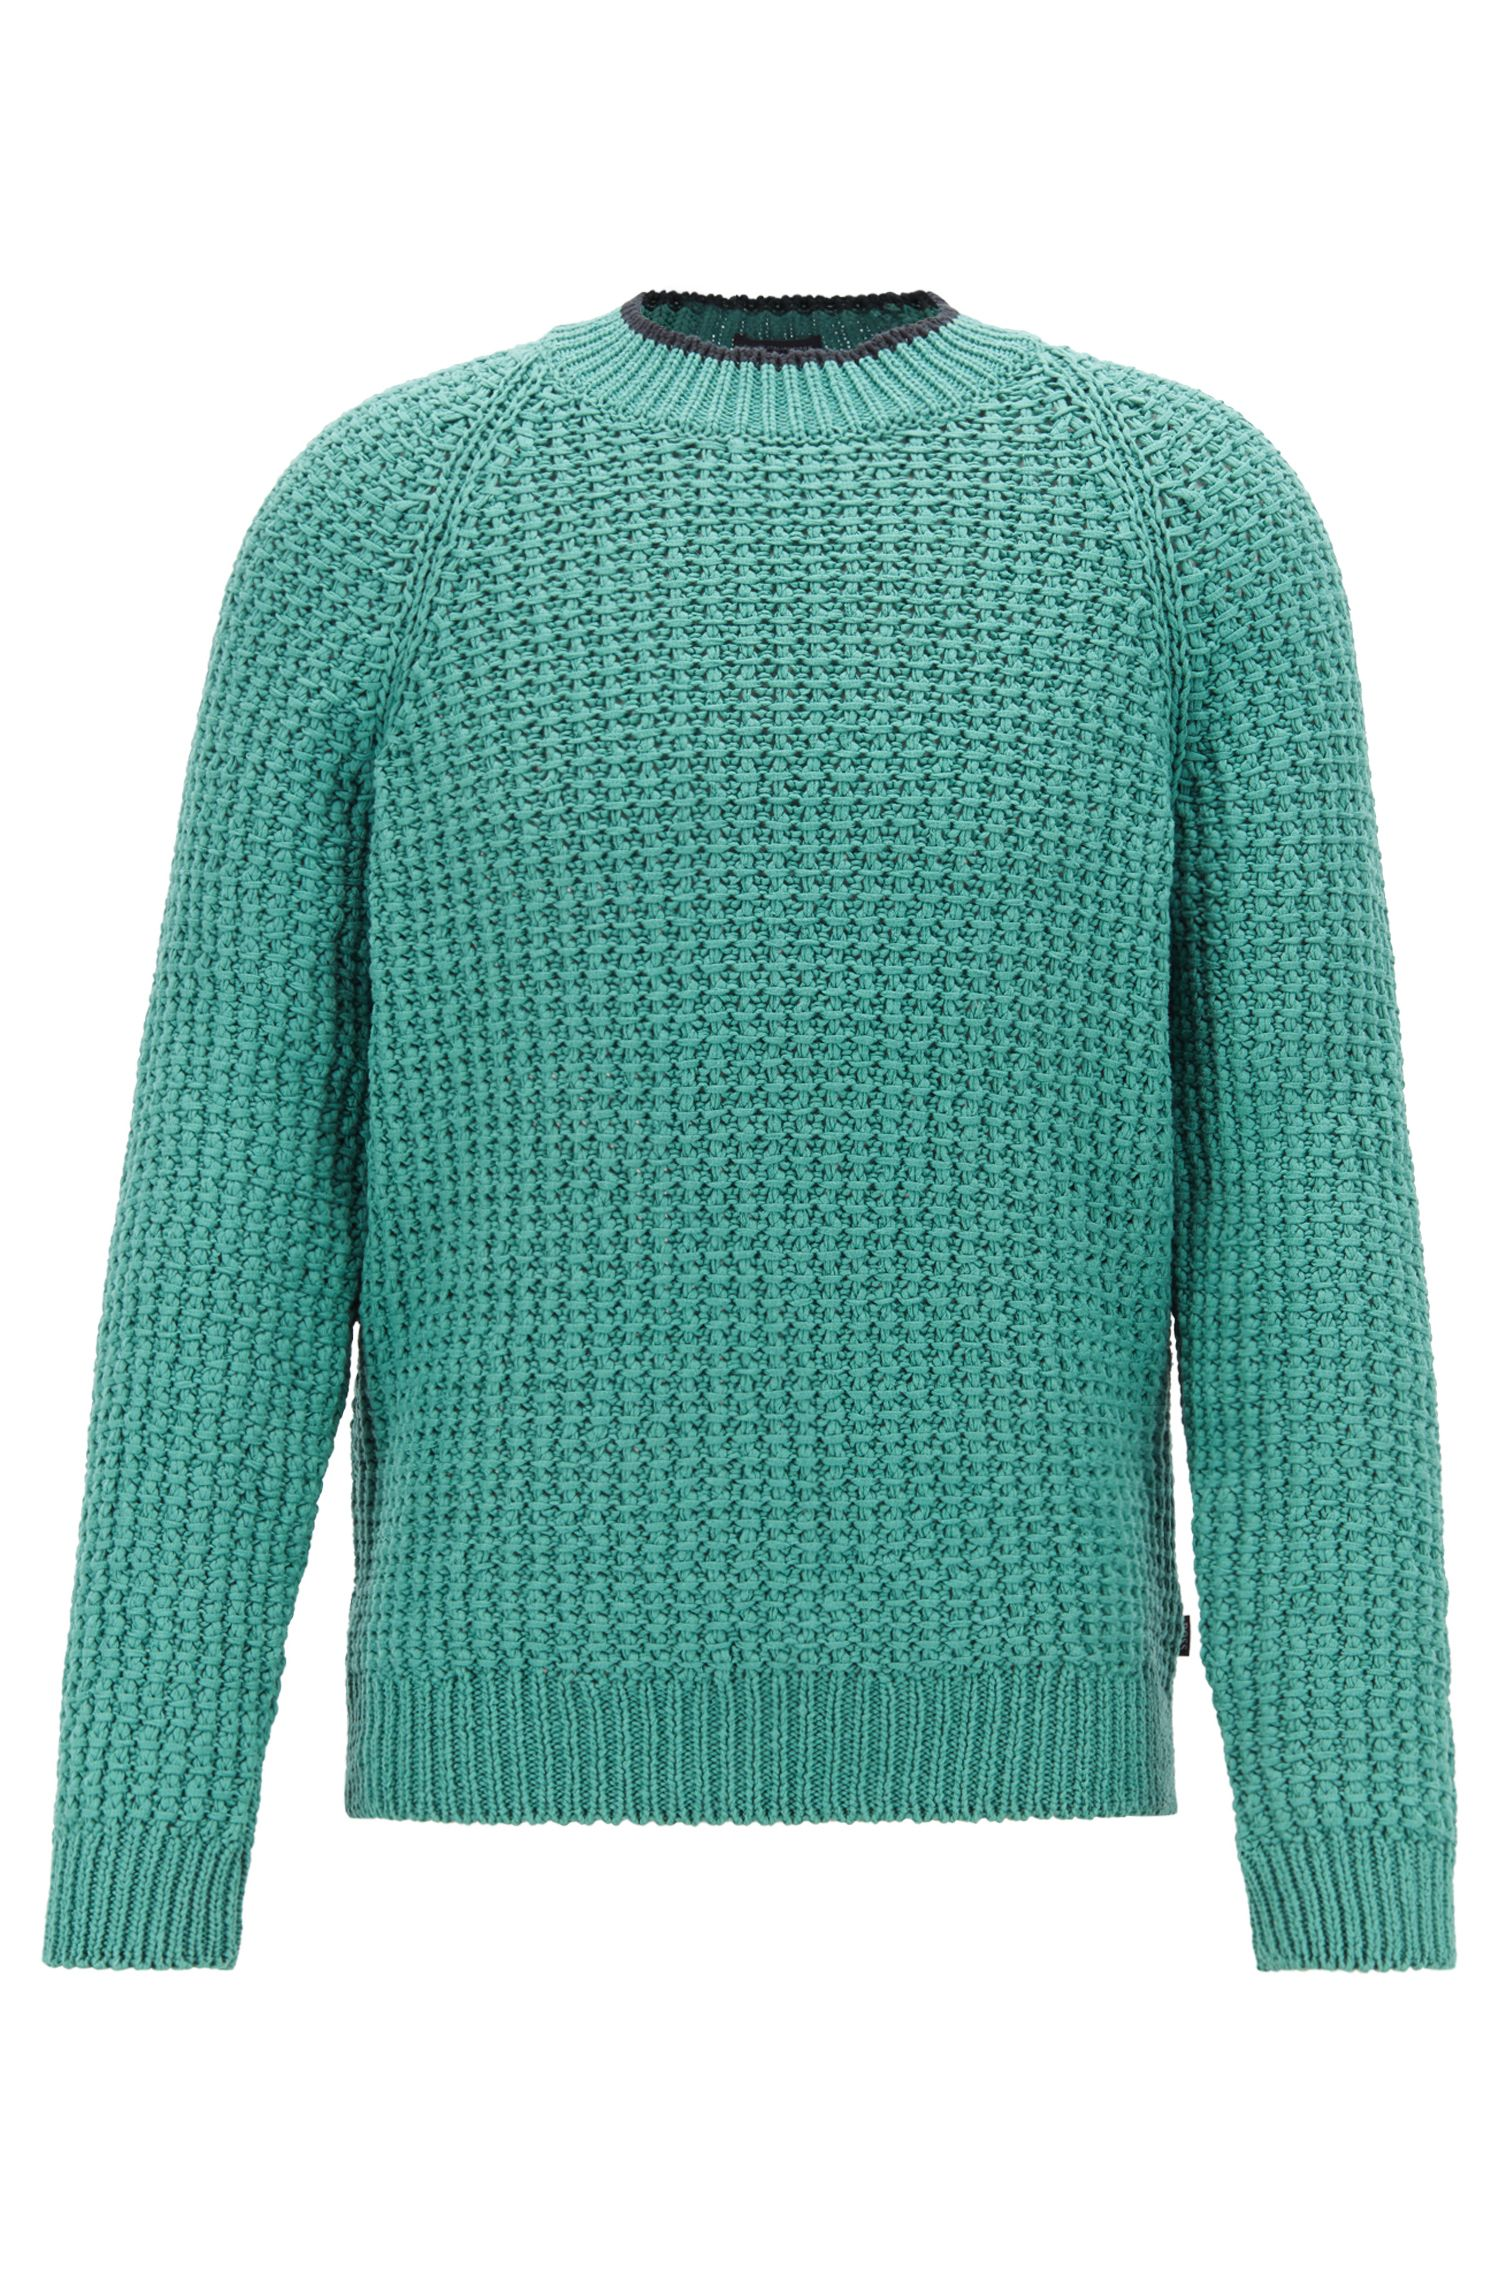 Crew-neck sweater in knitted cotton with contrast tipping, Open Green